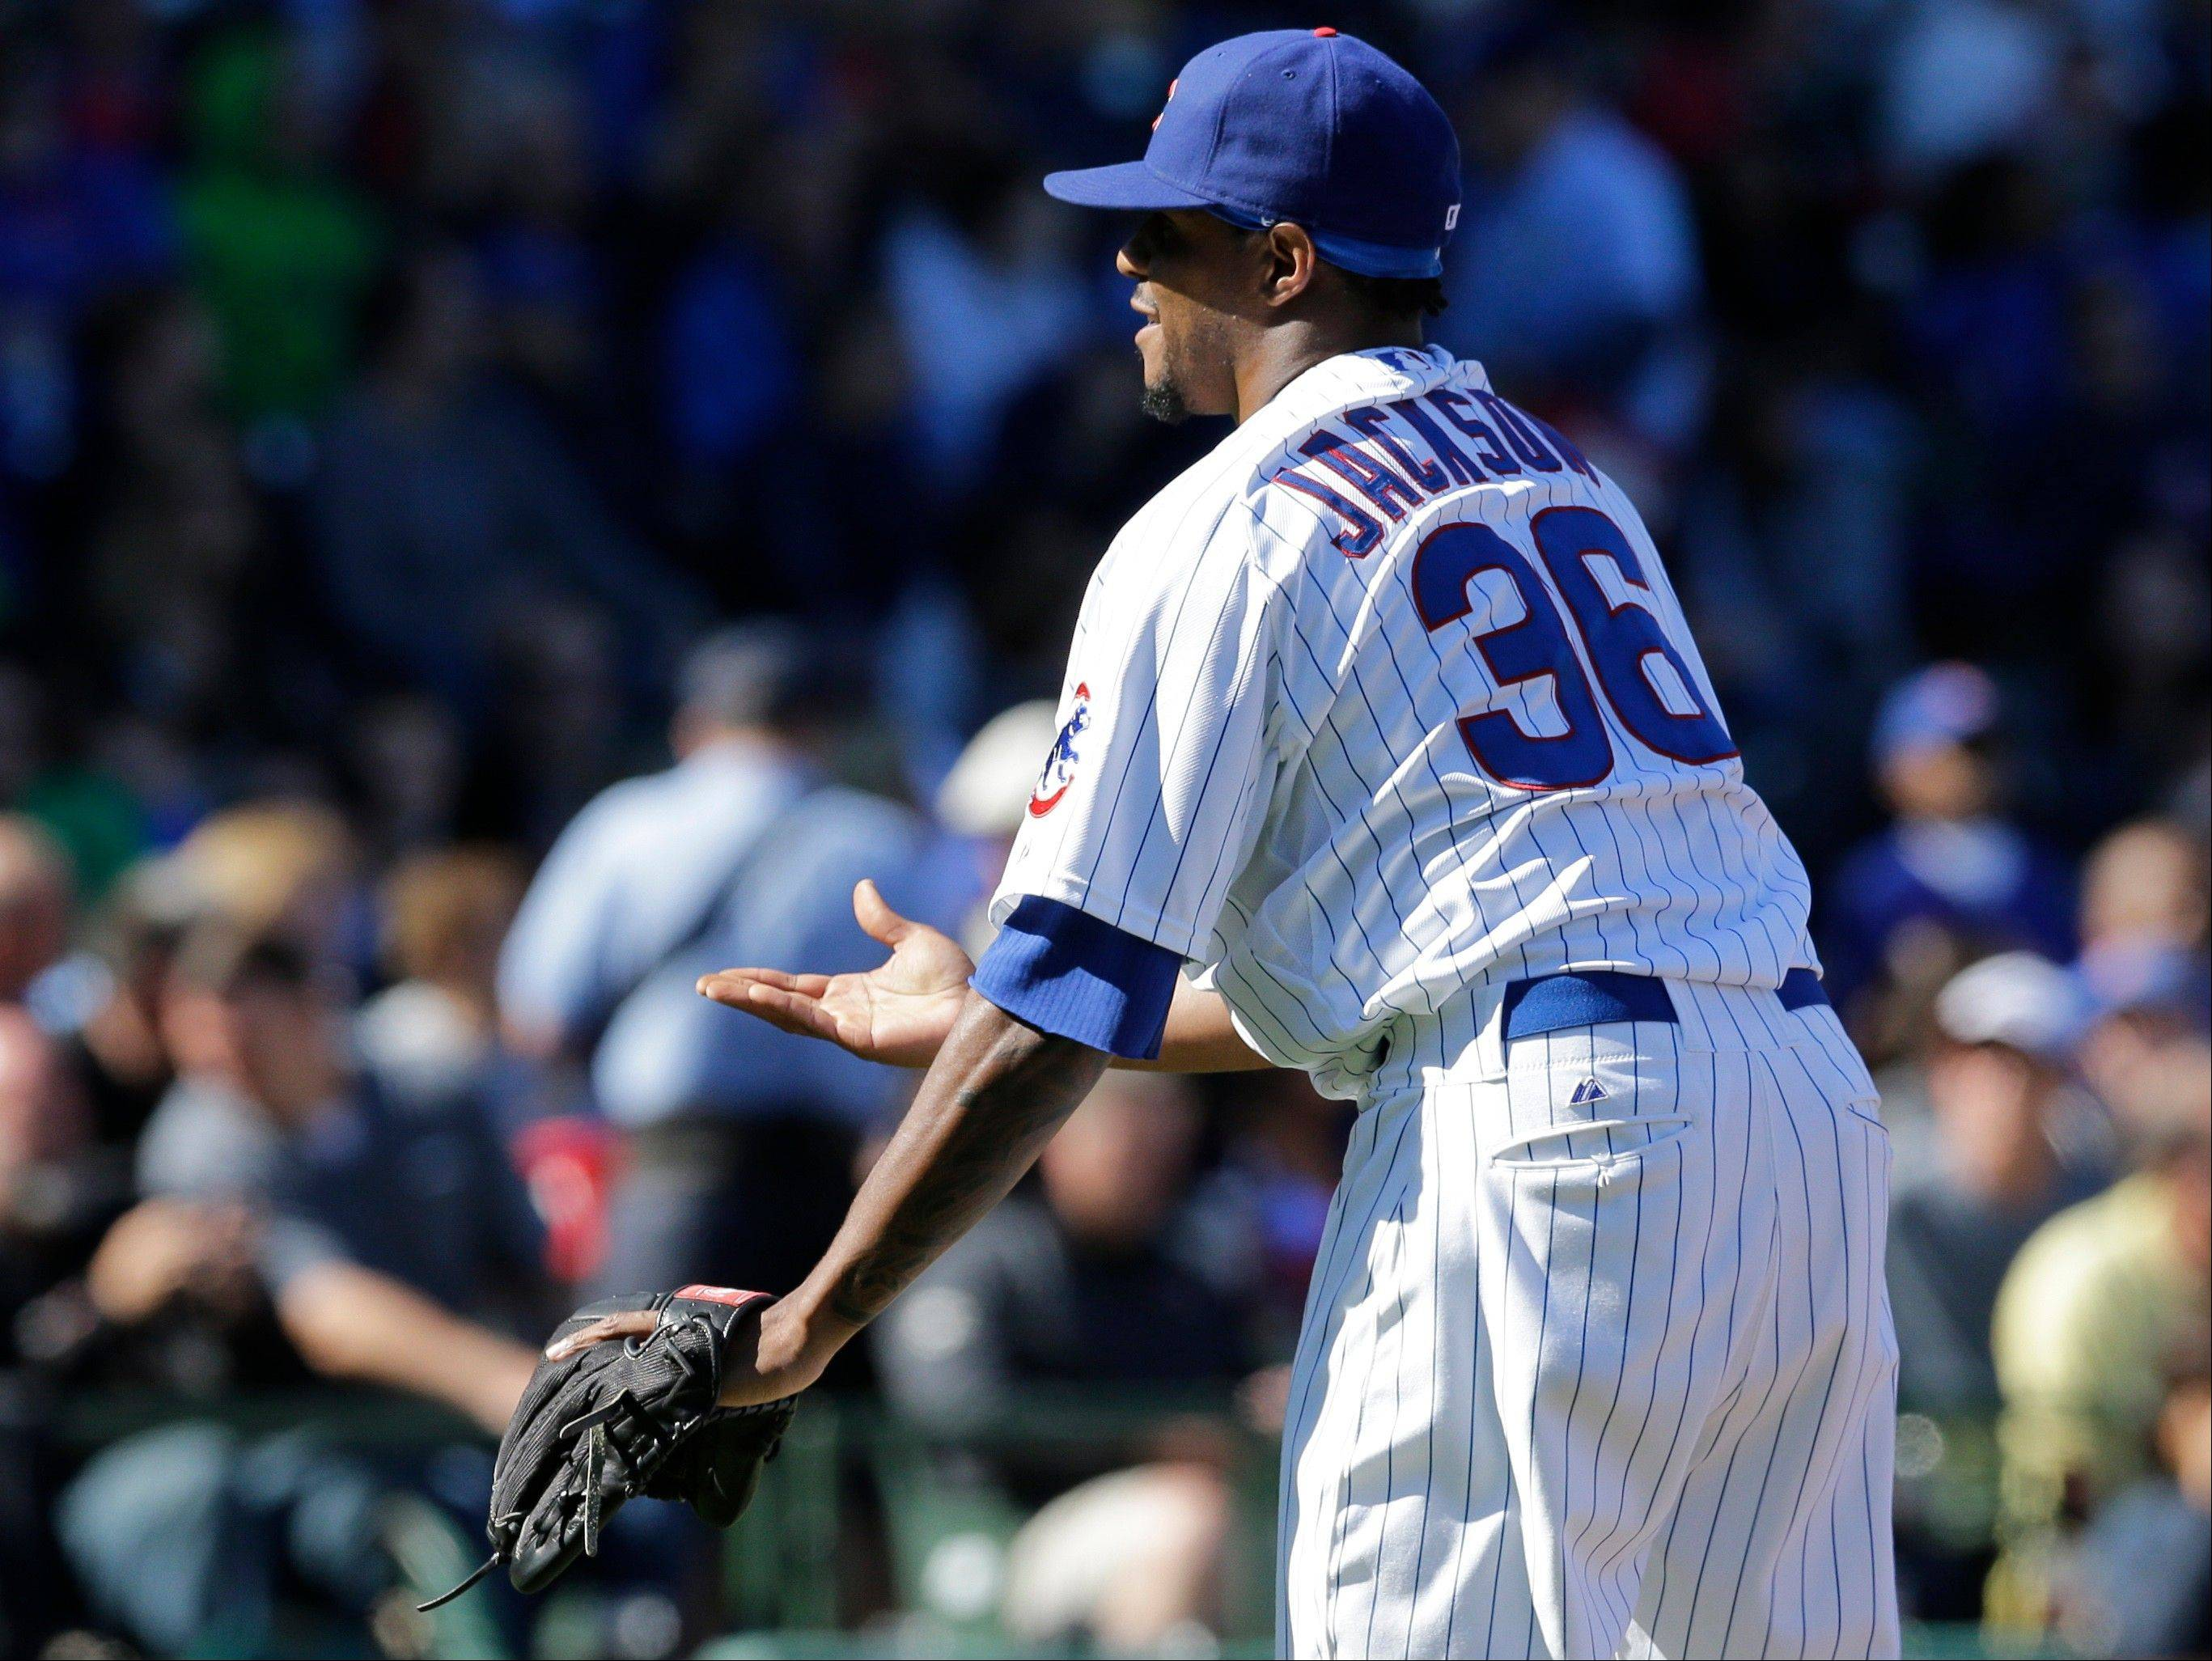 Cubs starter Edwin Jackson reacts to catcher Dioner Navarro after the Braves� Andrelton Simmons hit a solo home in the fourth inning Sunday at Wrigley Field.